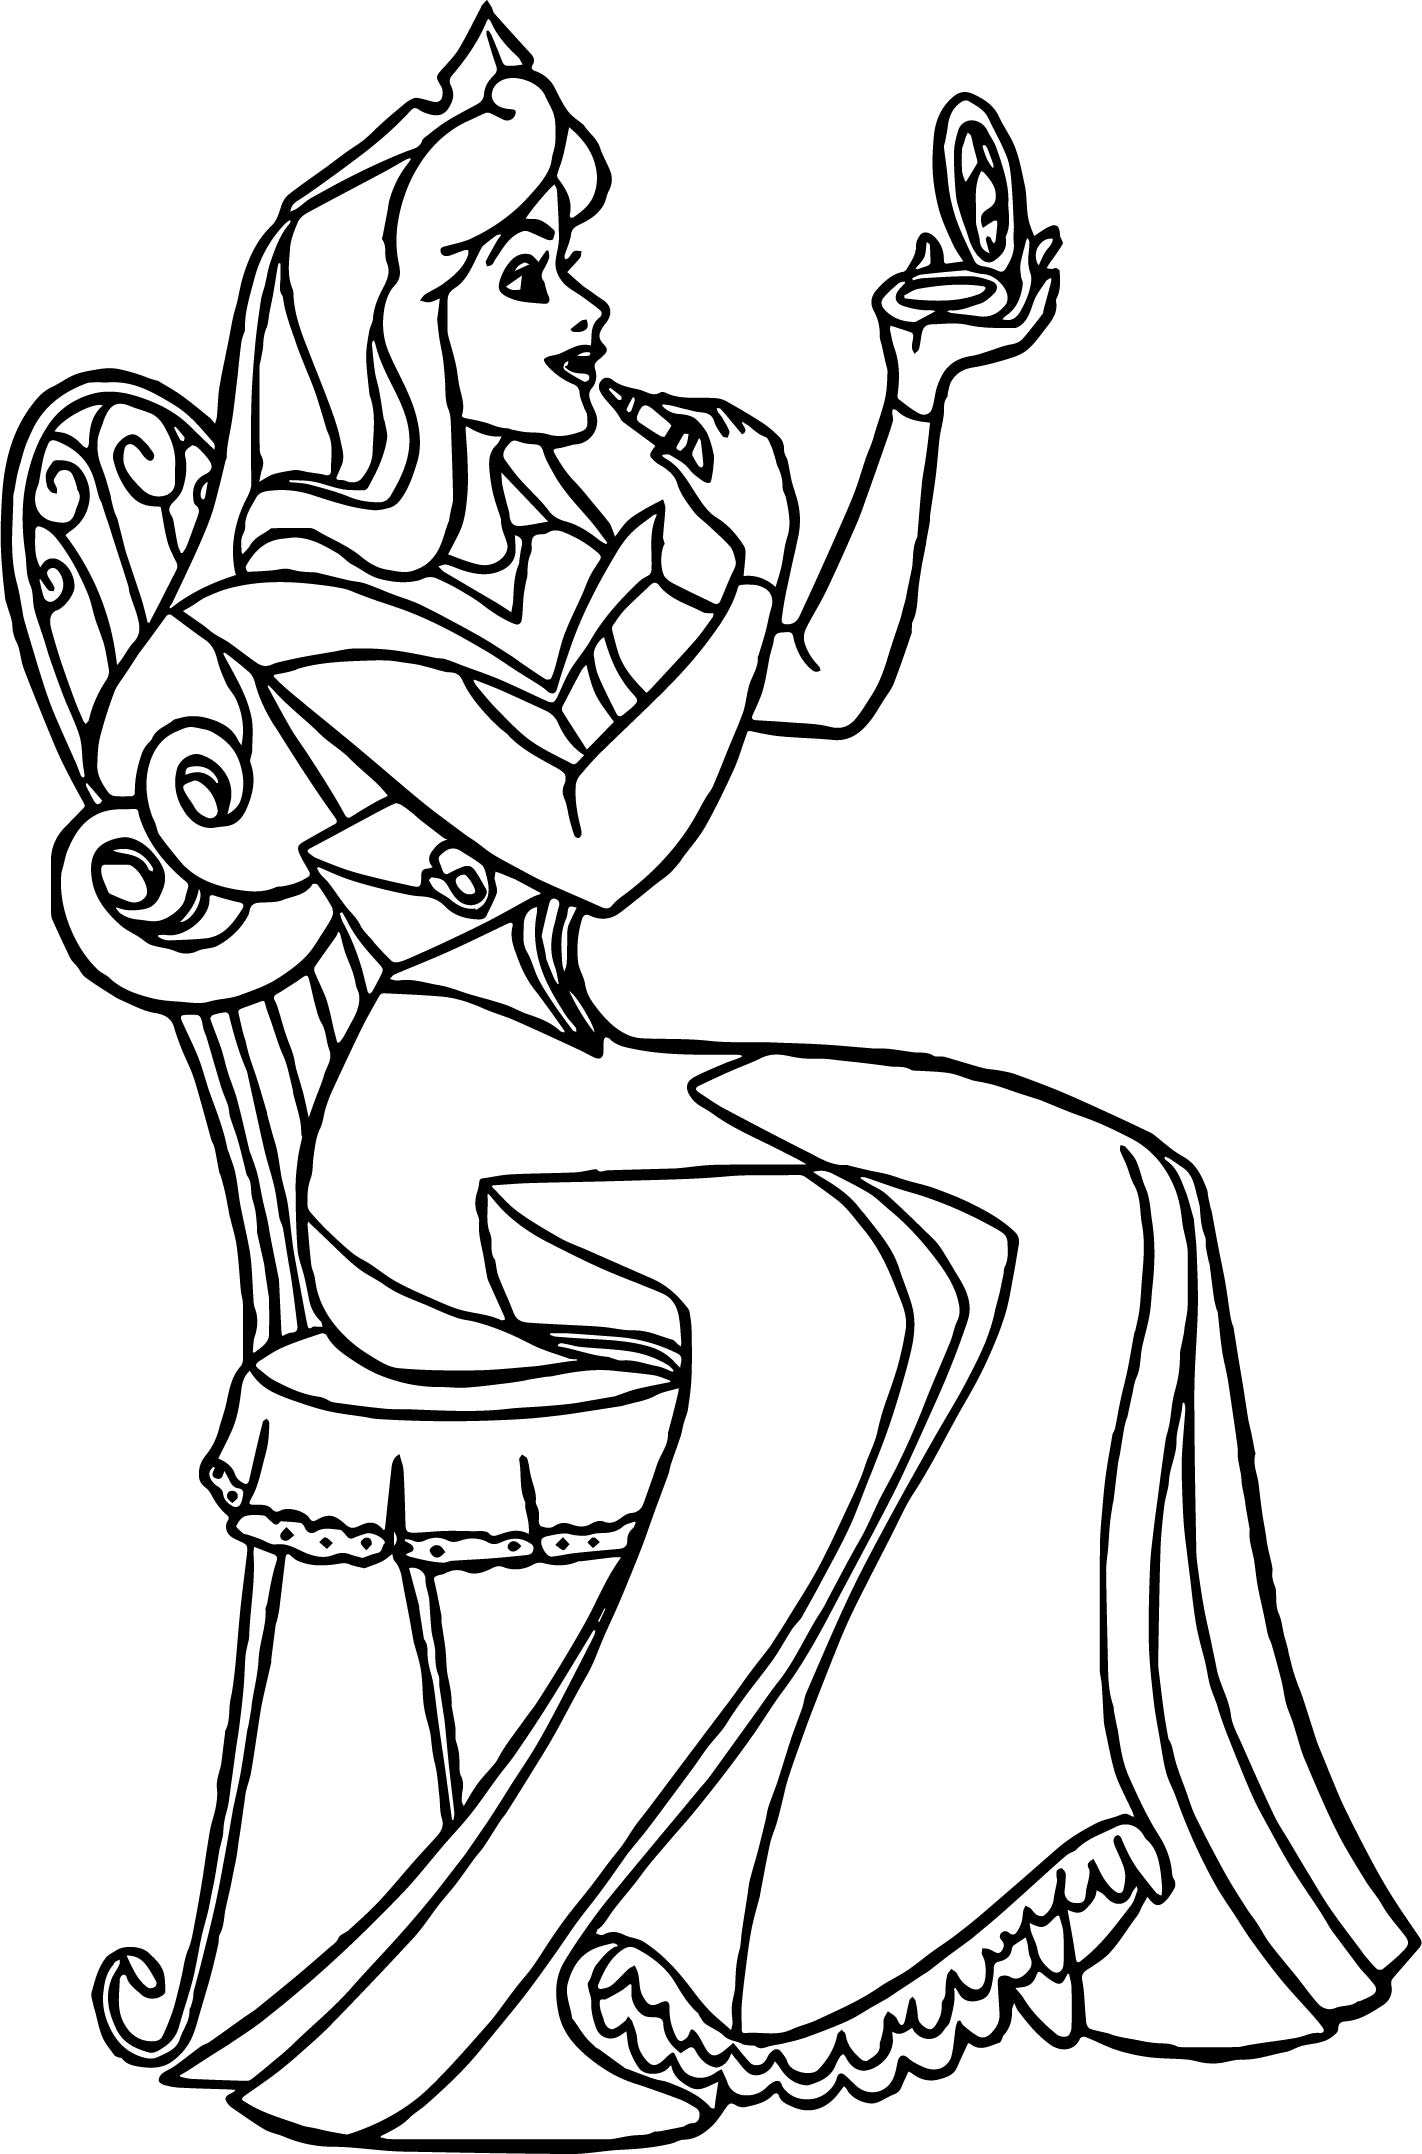 aurora makeup cartoon coloring page wecoloringpage